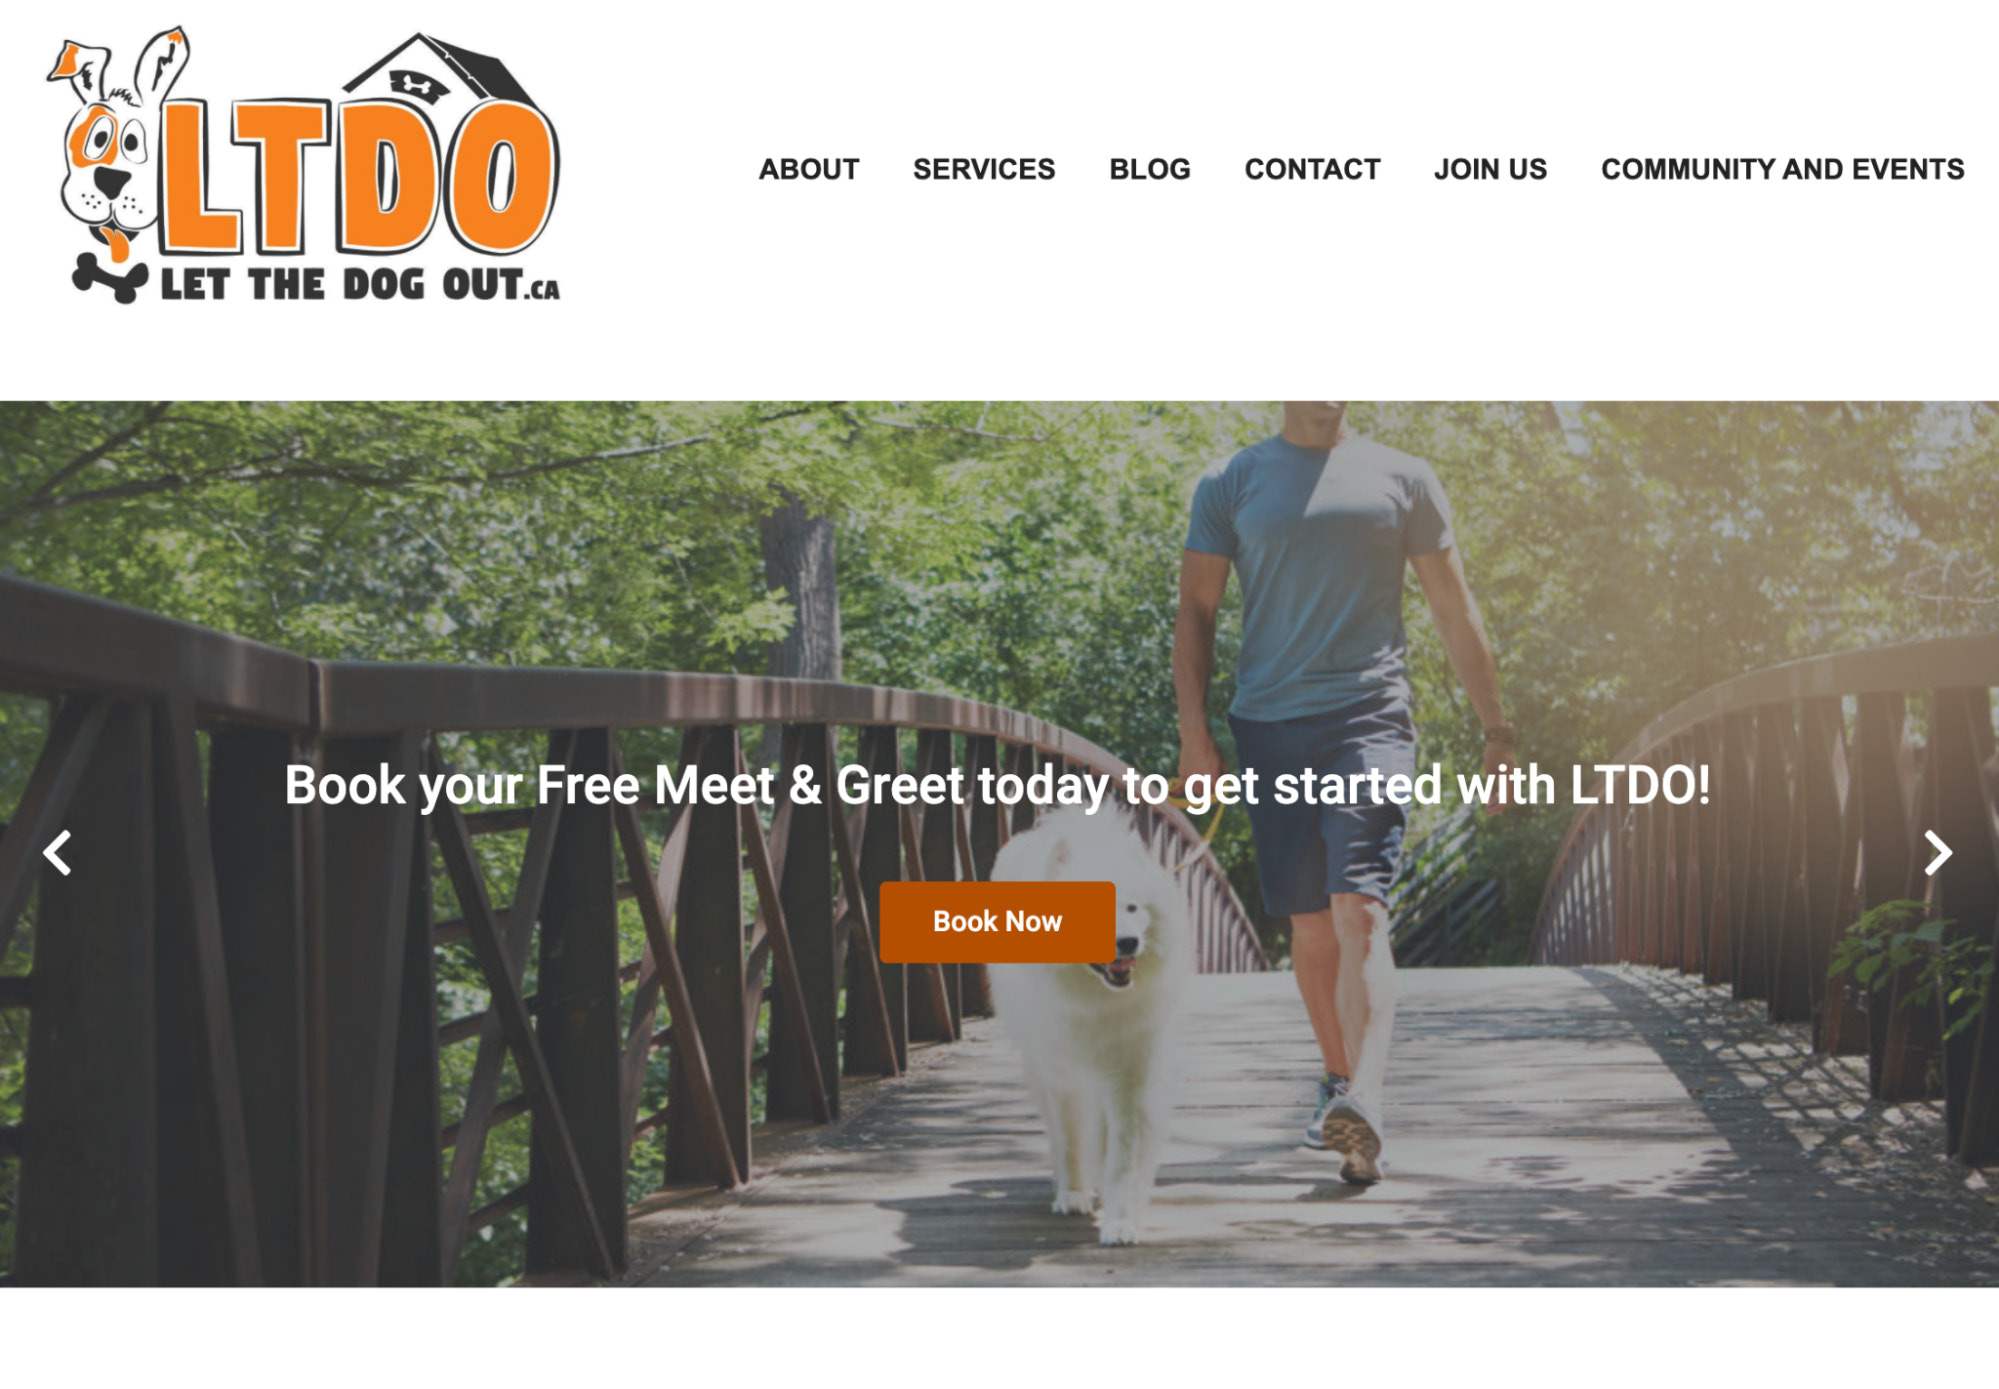 let the dog out website